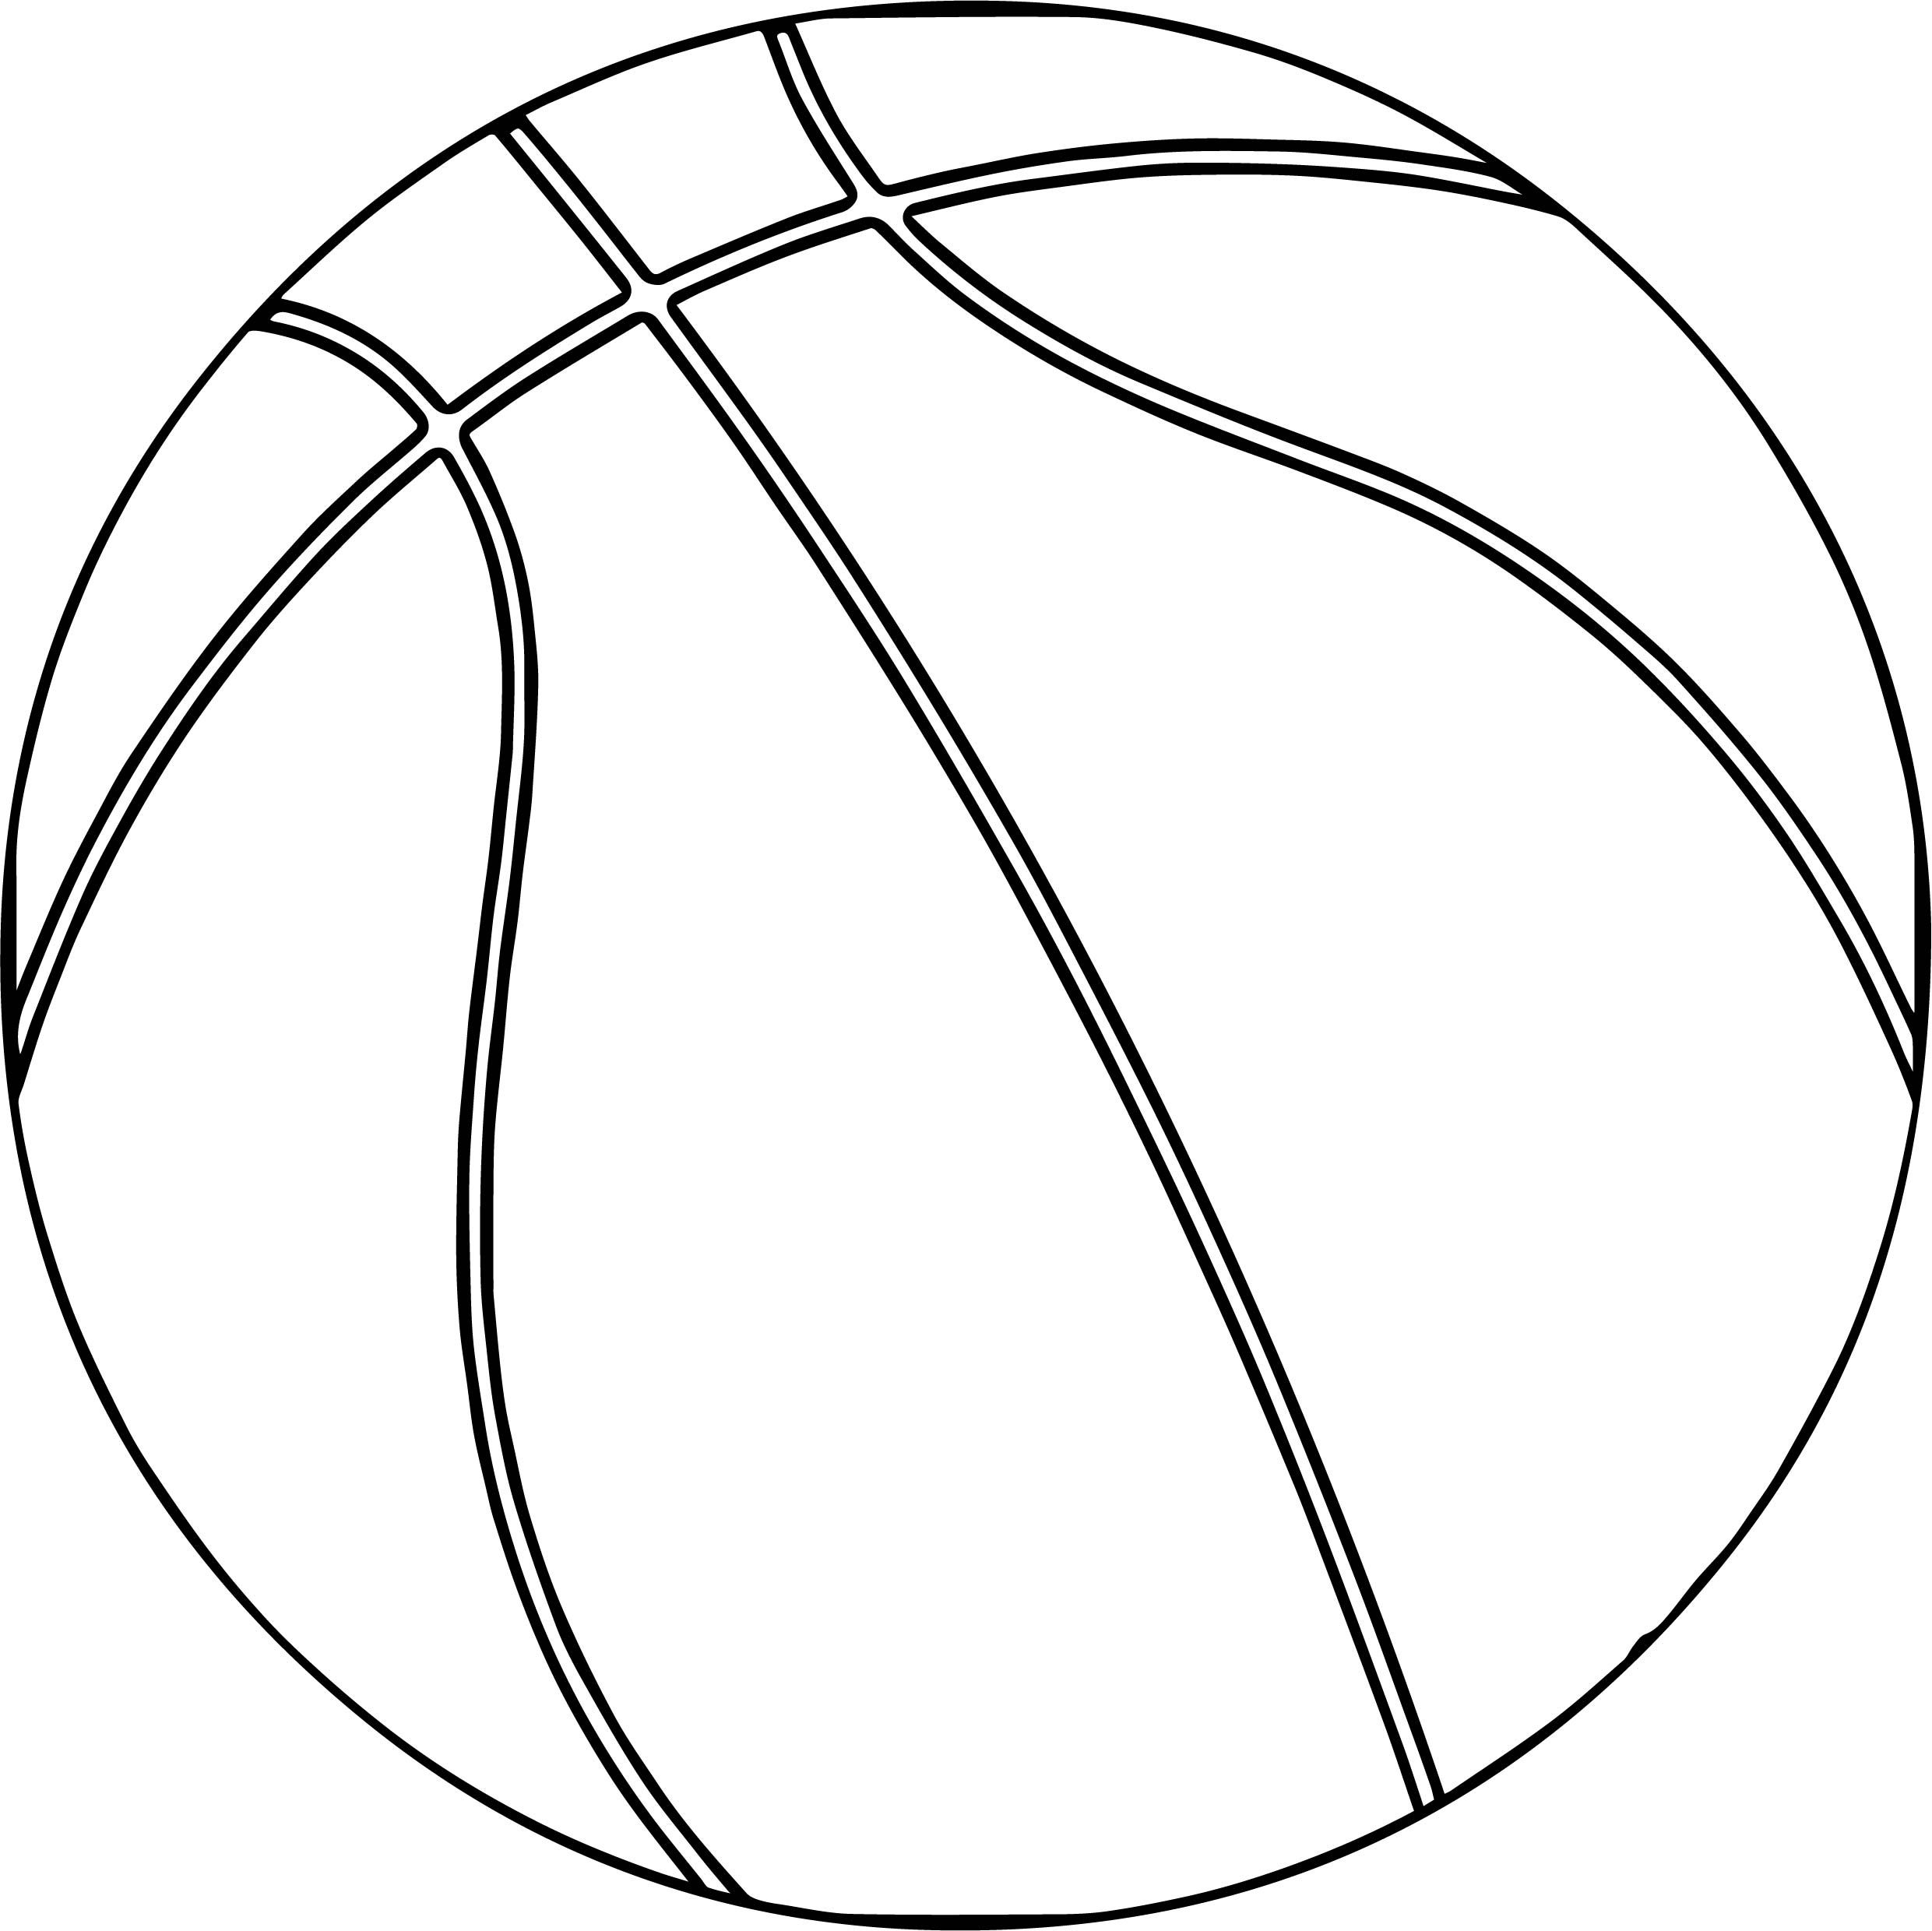 Cool One Basketball Ball Playing Basketball Coloring Page Sports